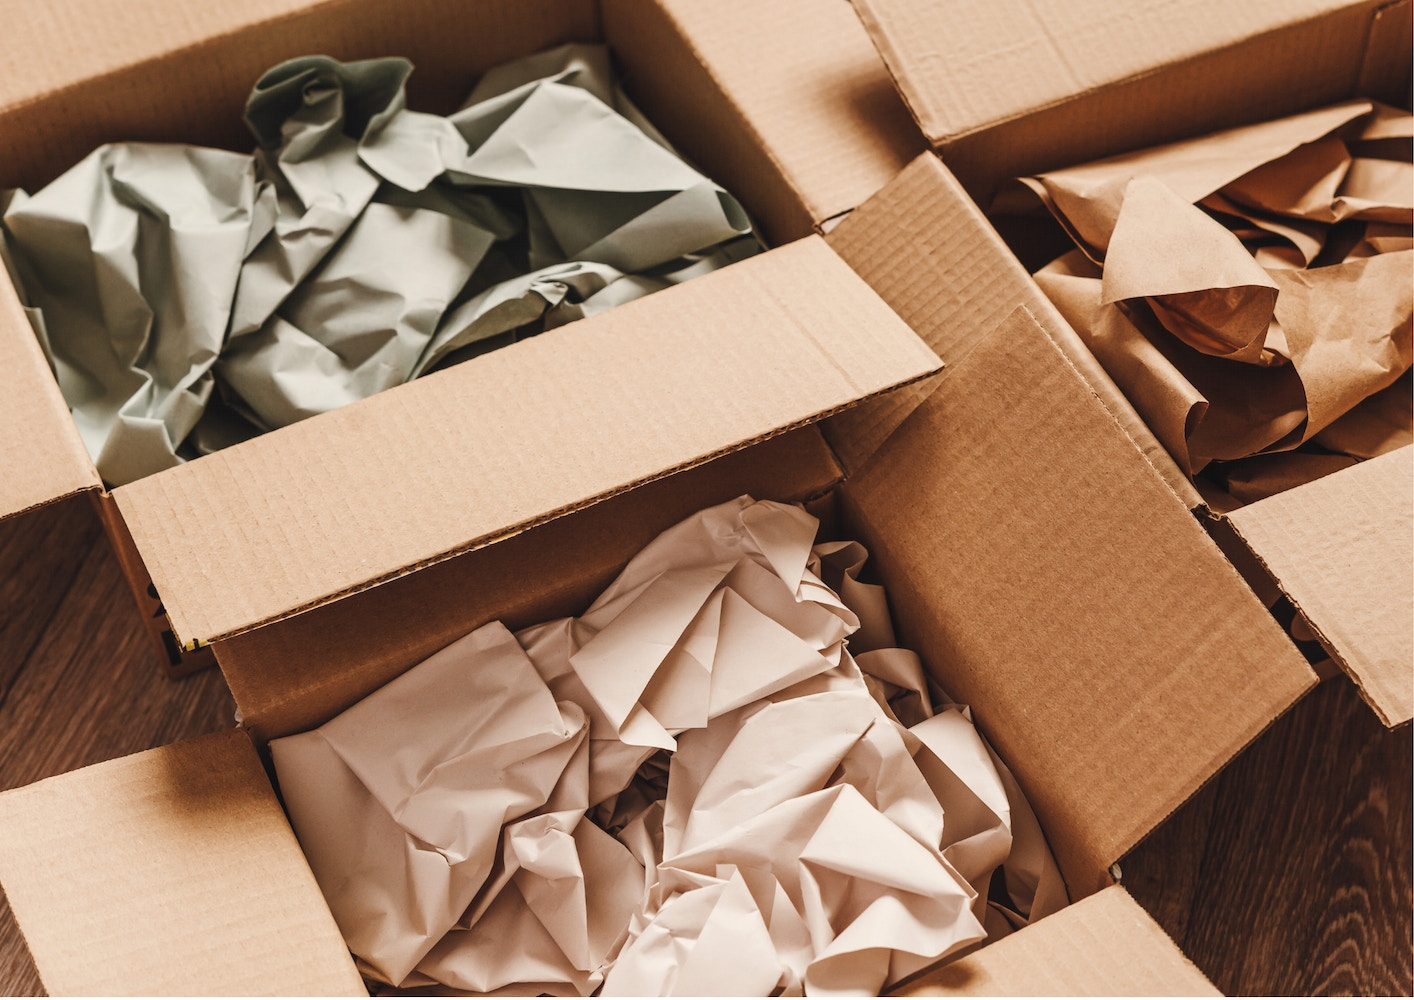 Looking for sustainable packaging? Let our sellers guide you!